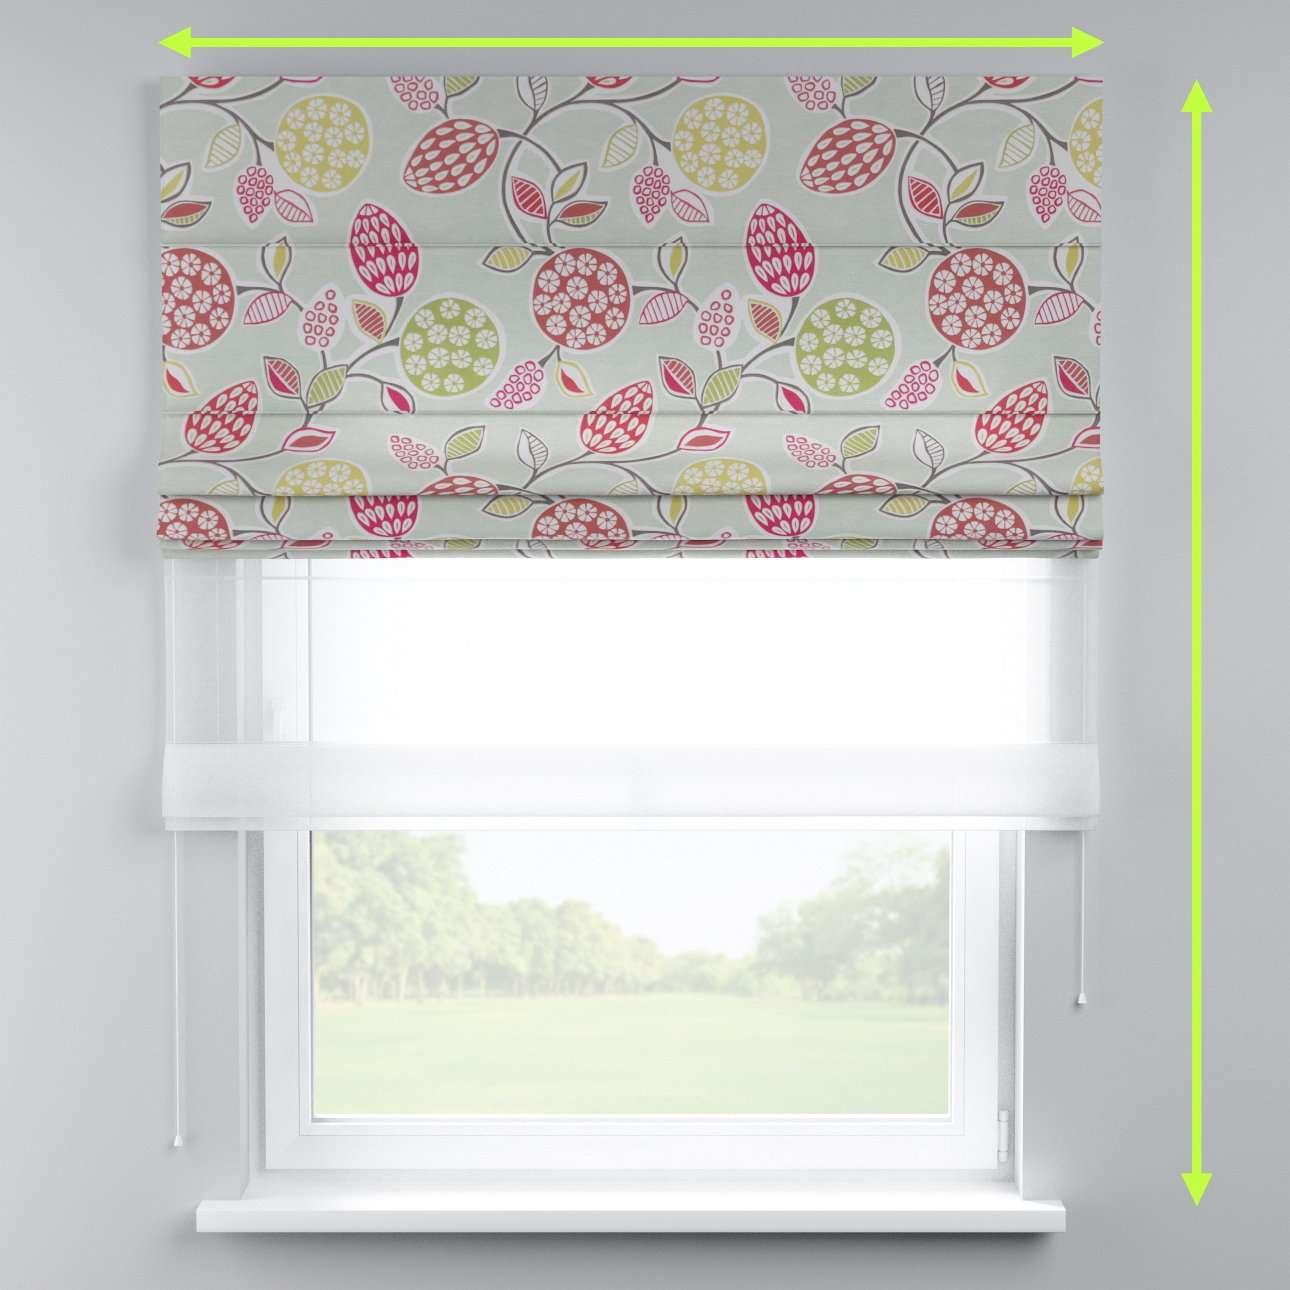 Voile and fabric roman blind (DUO II) in collection Norge, fabric: 140-78